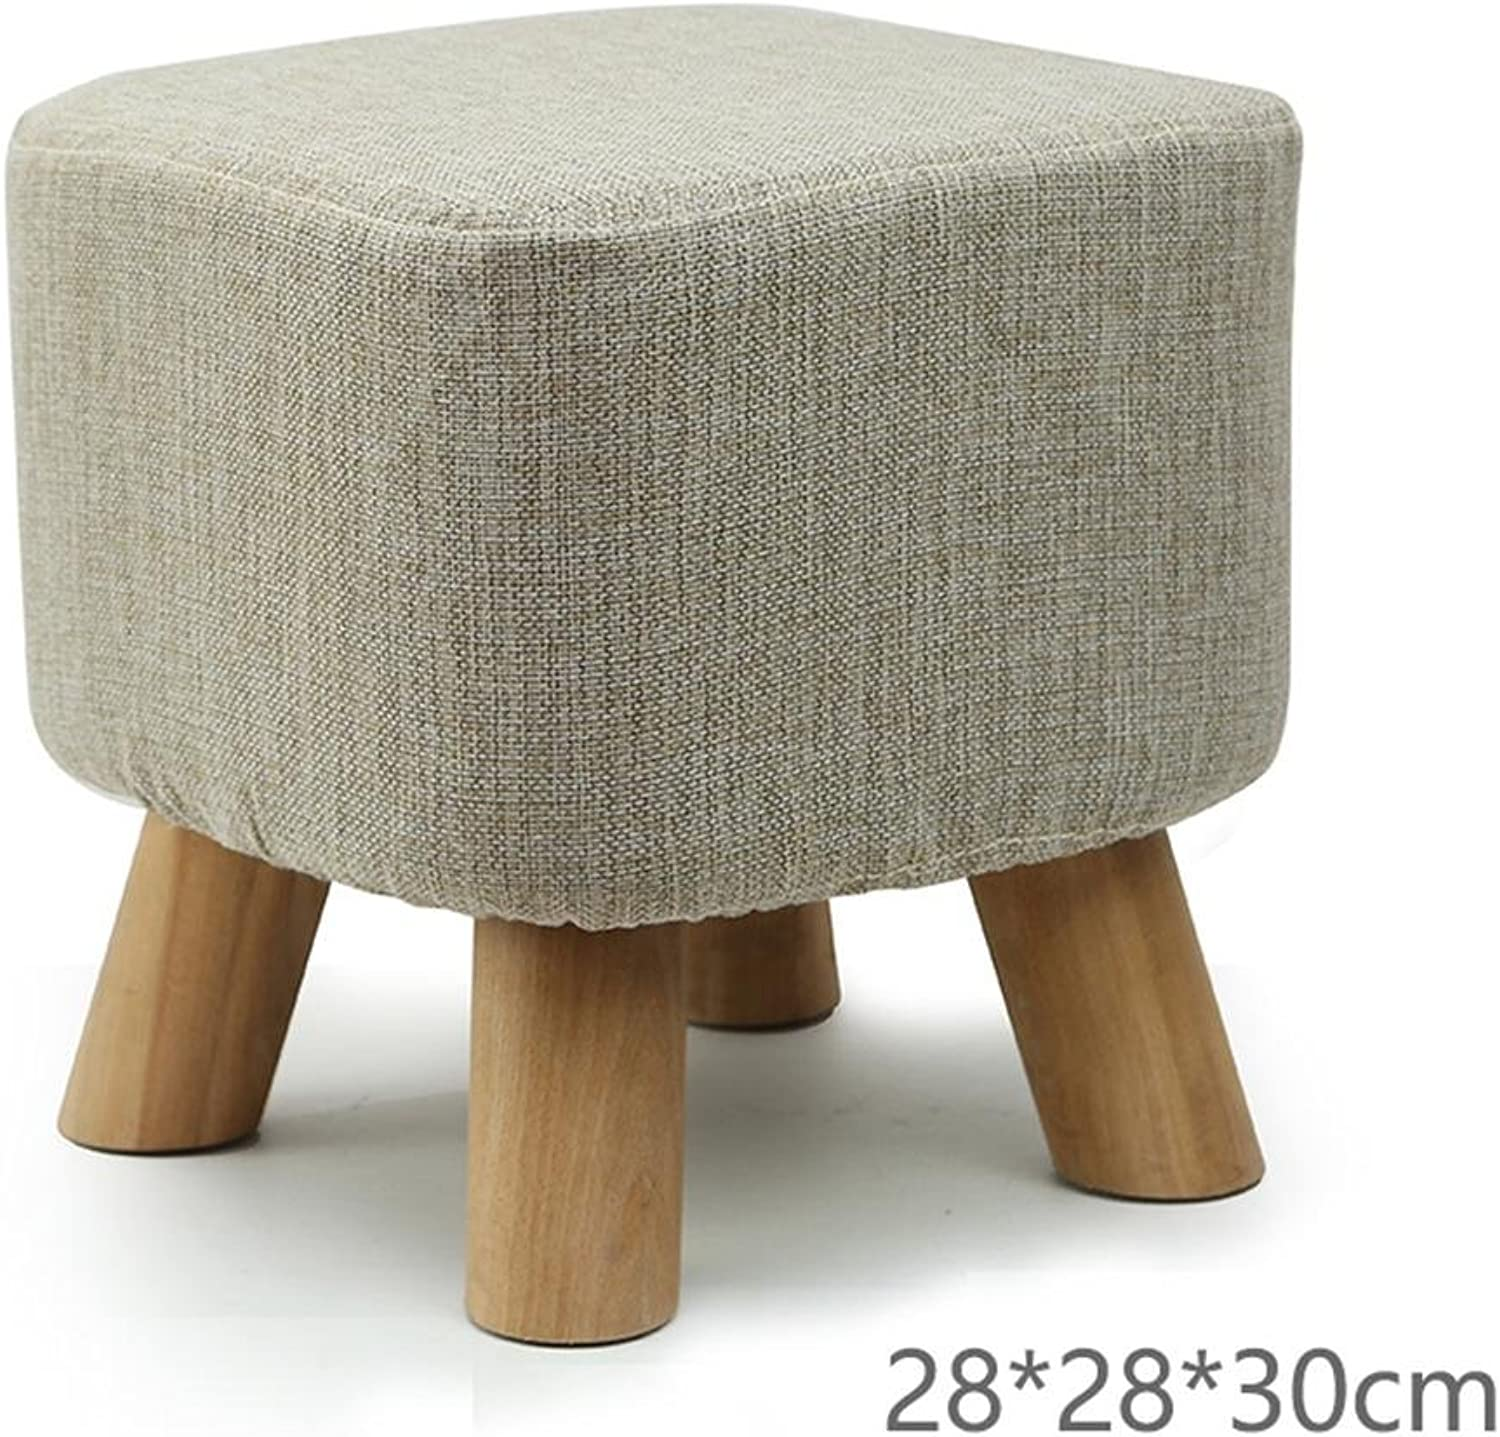 Creative Changing shoes Stool Low Stool Square Stool Solid Wood Sofa Household Coffee Table Adult 28  28  30CM, 2,Strong